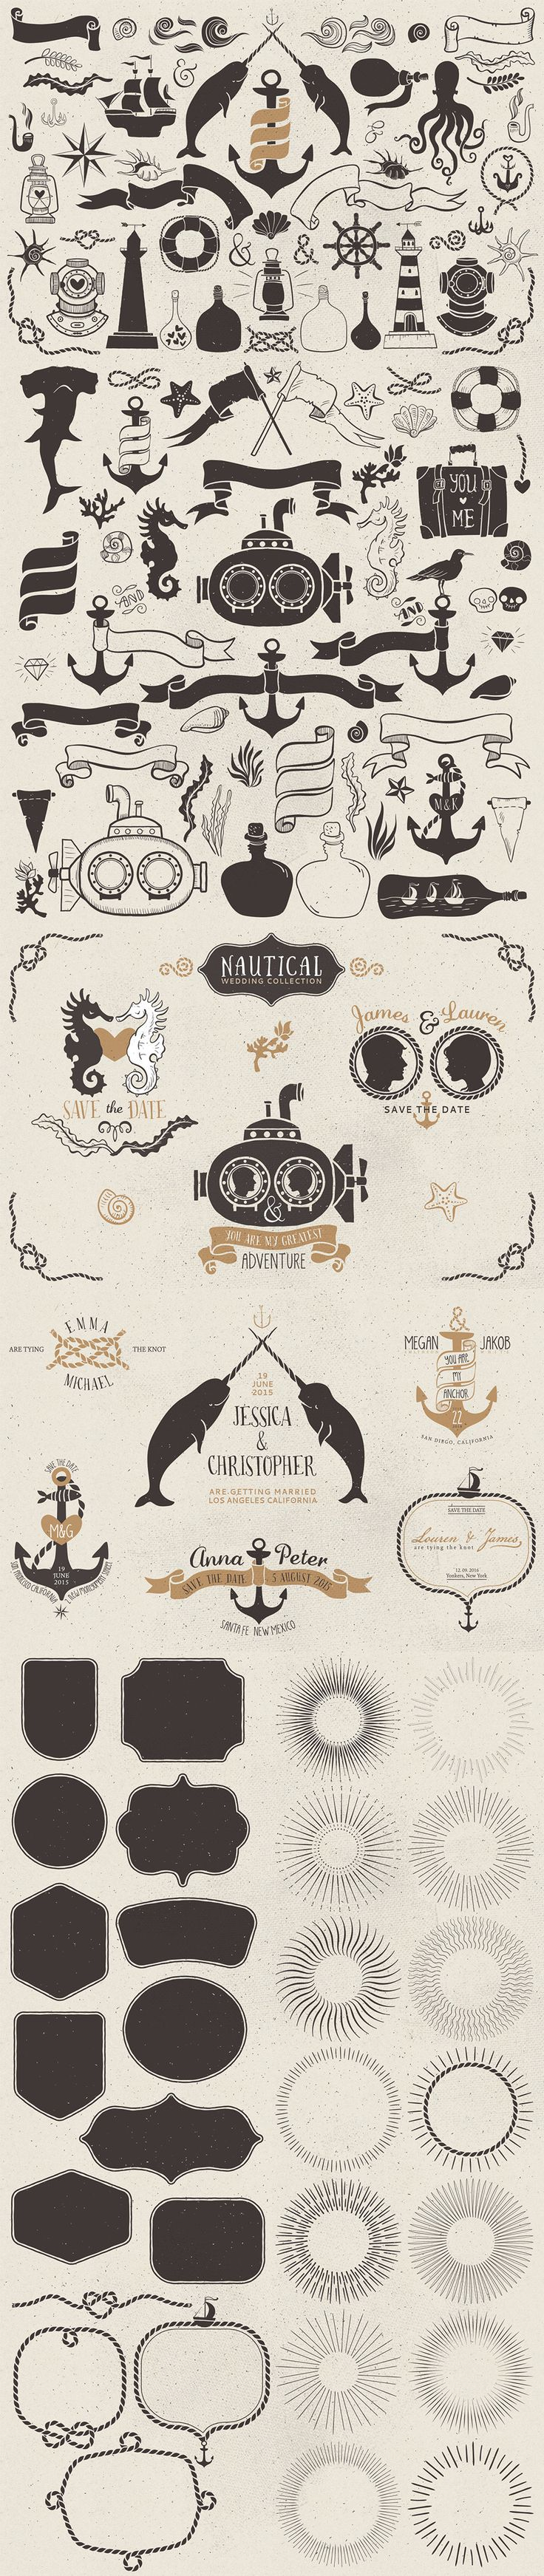 Nautical Romantic Vector Pack - https://www.designcuts.com/product/nautical-romantic-vector-pack/